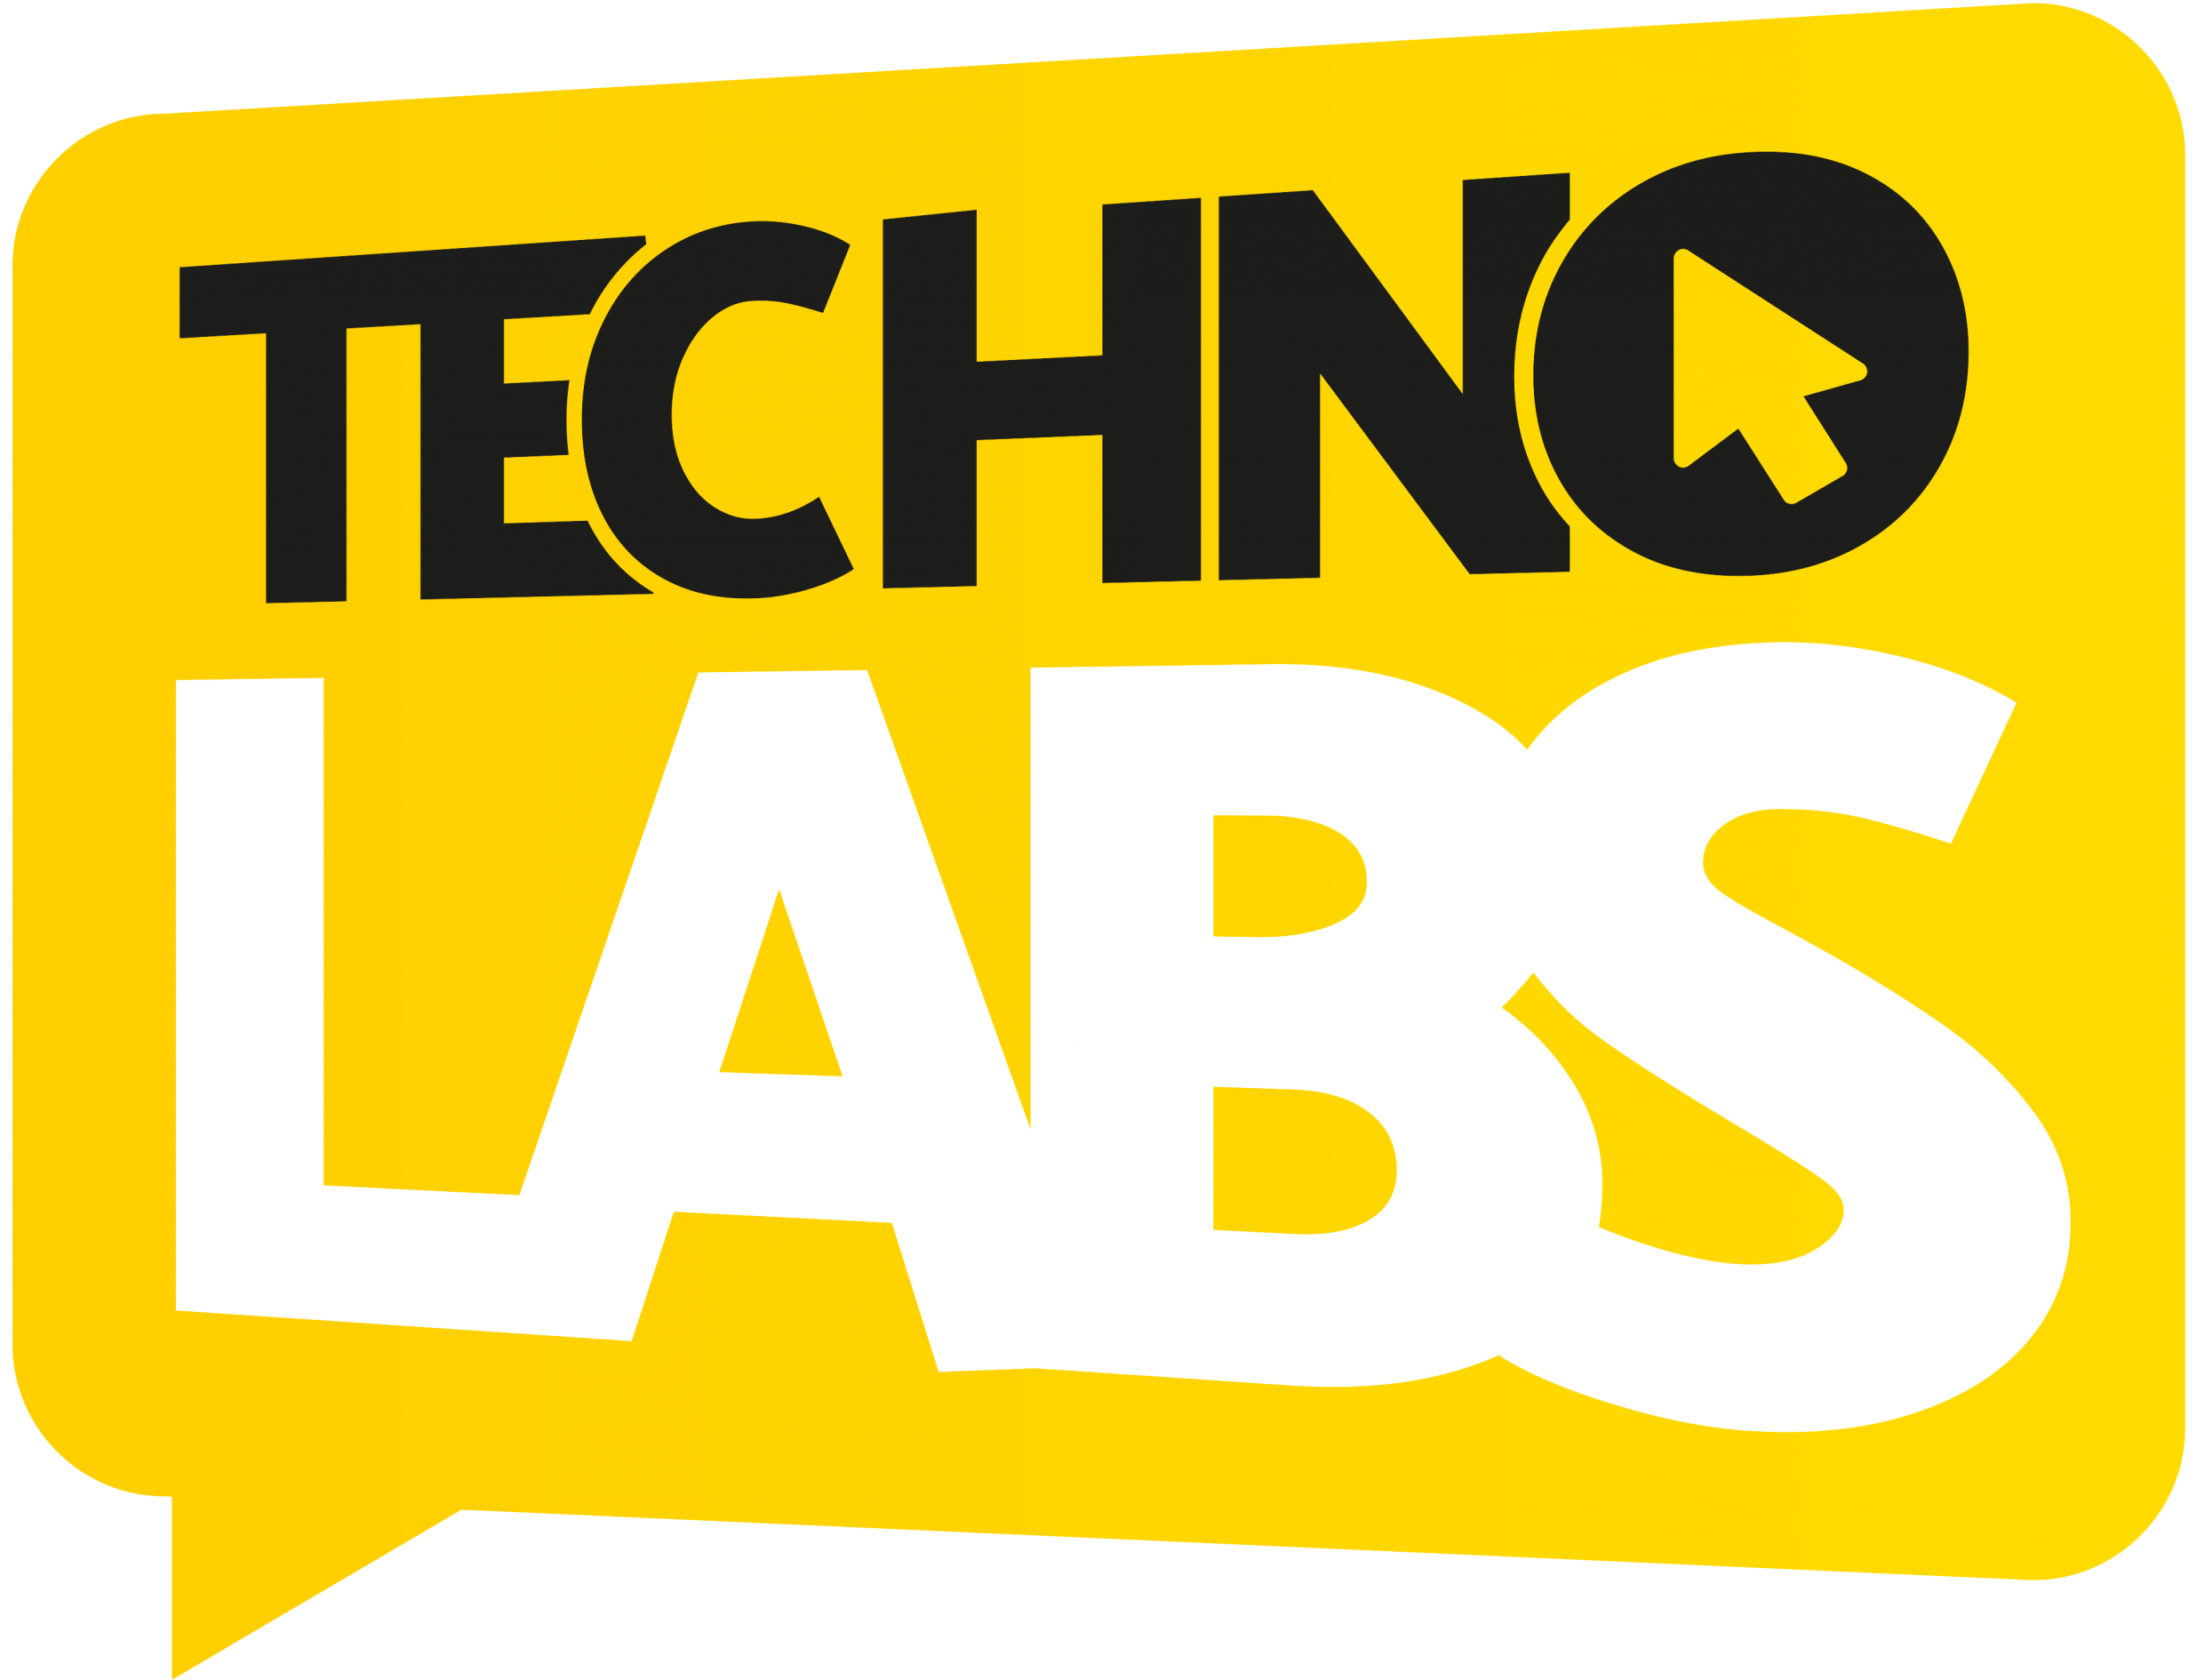 Technolabs – Agencia de Marketing Digital en Tuluá